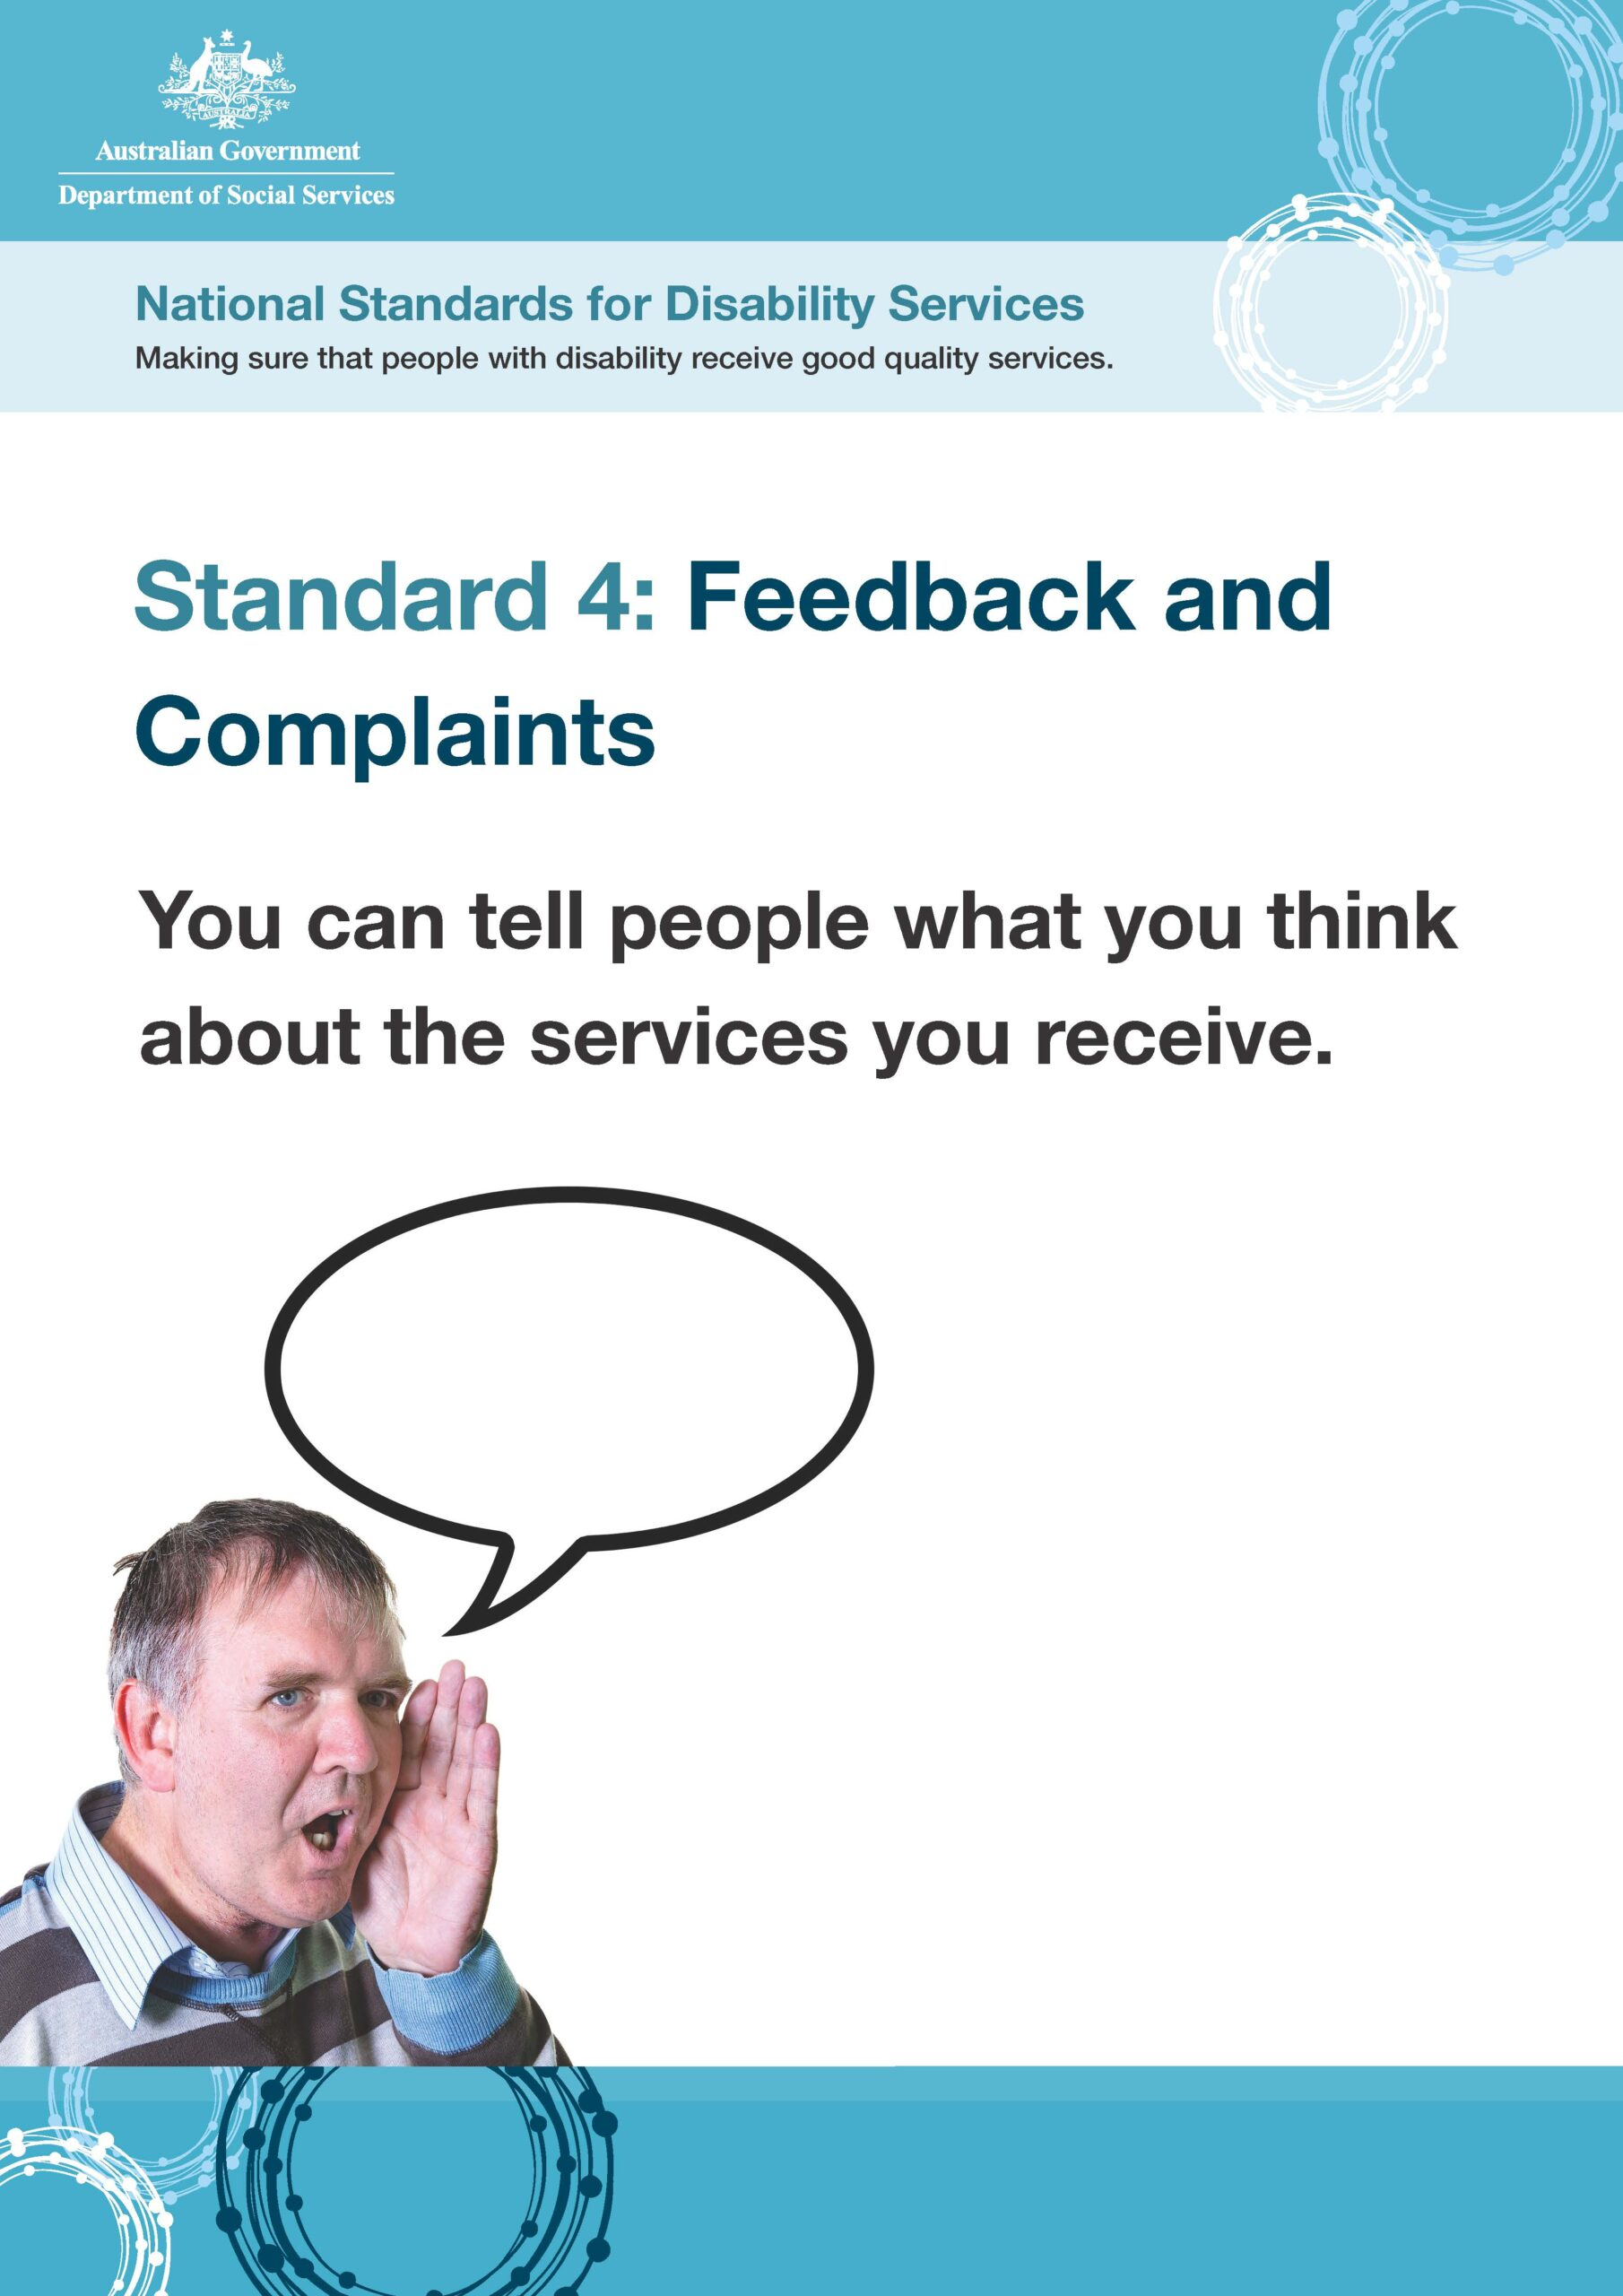 We aim to respond promptly and fairly to complaints and feedback and continuously improve customer experiences.